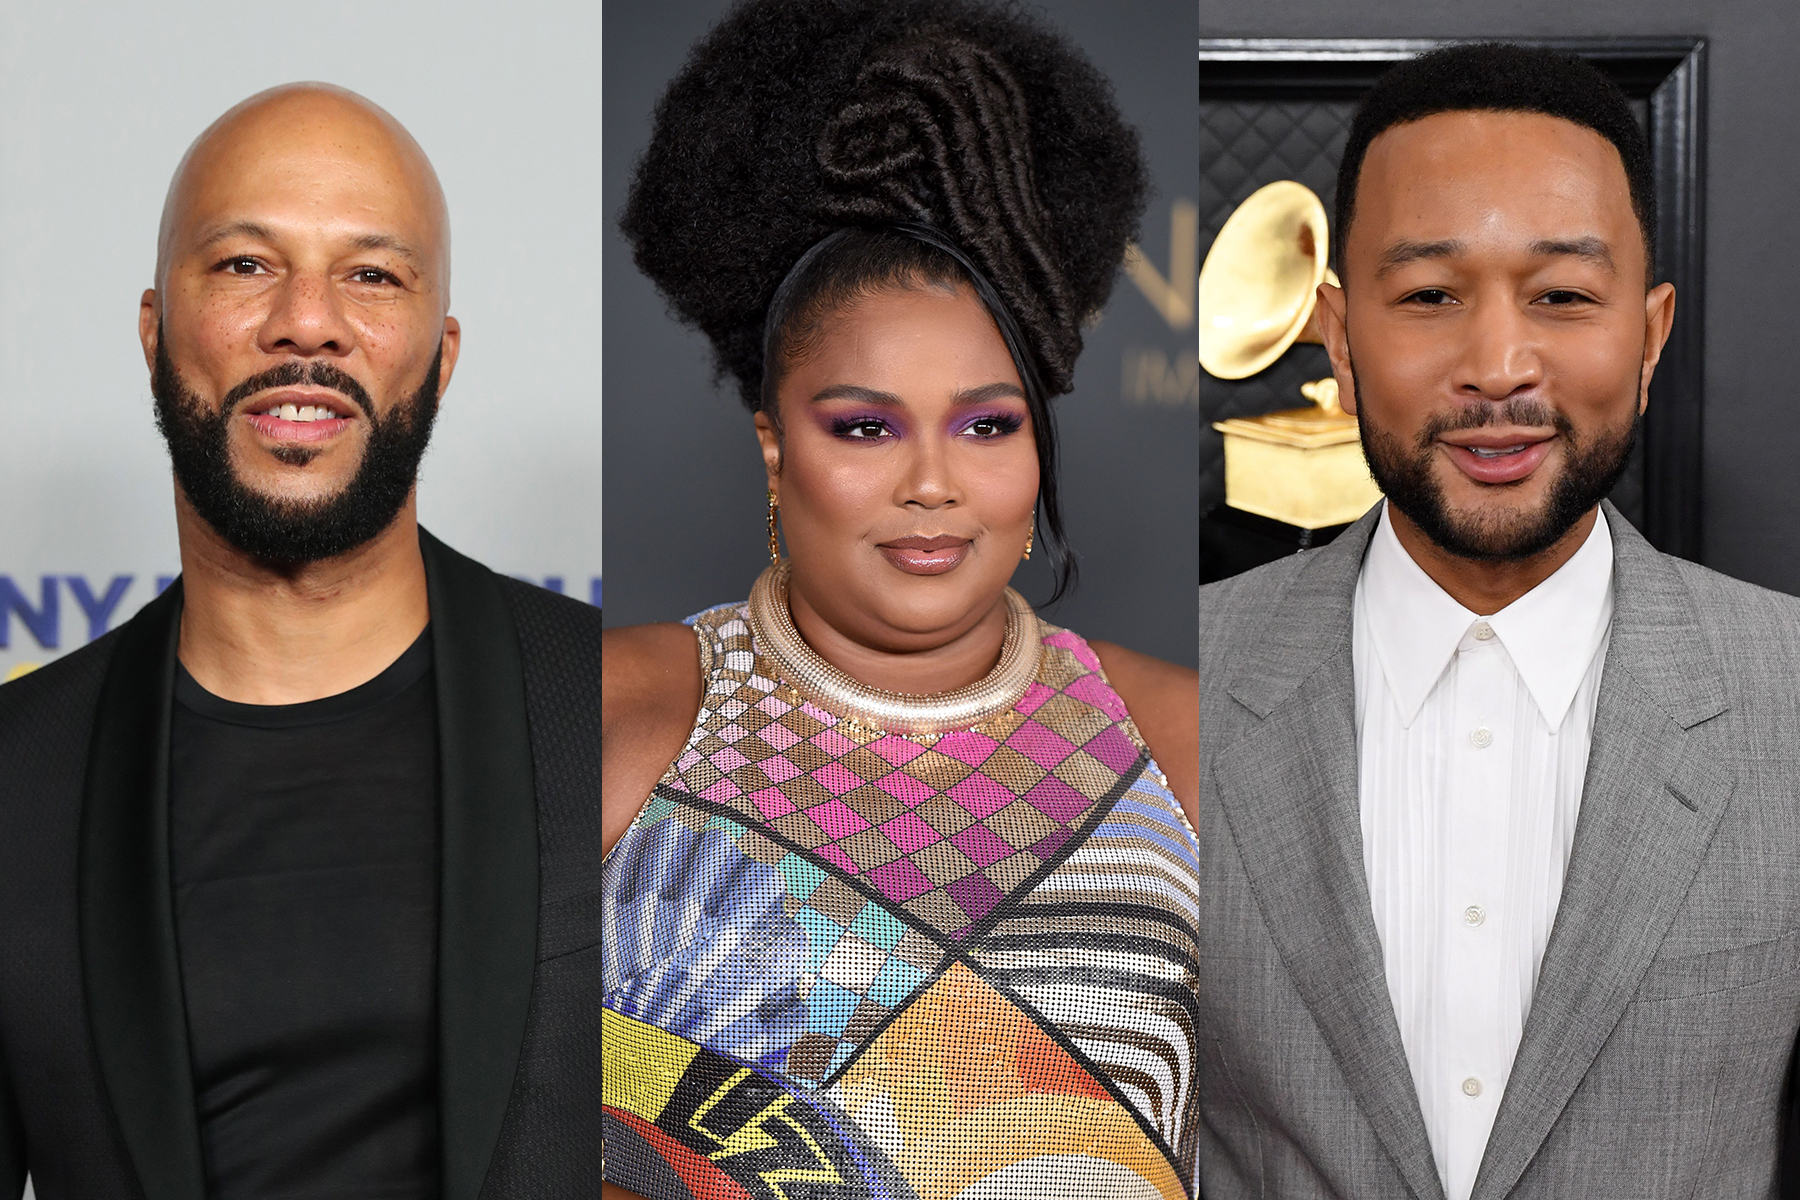 John Legend, Common, the Weeknd, Lizzo Sign Open Letter to Defund the Police - Rolling Stone